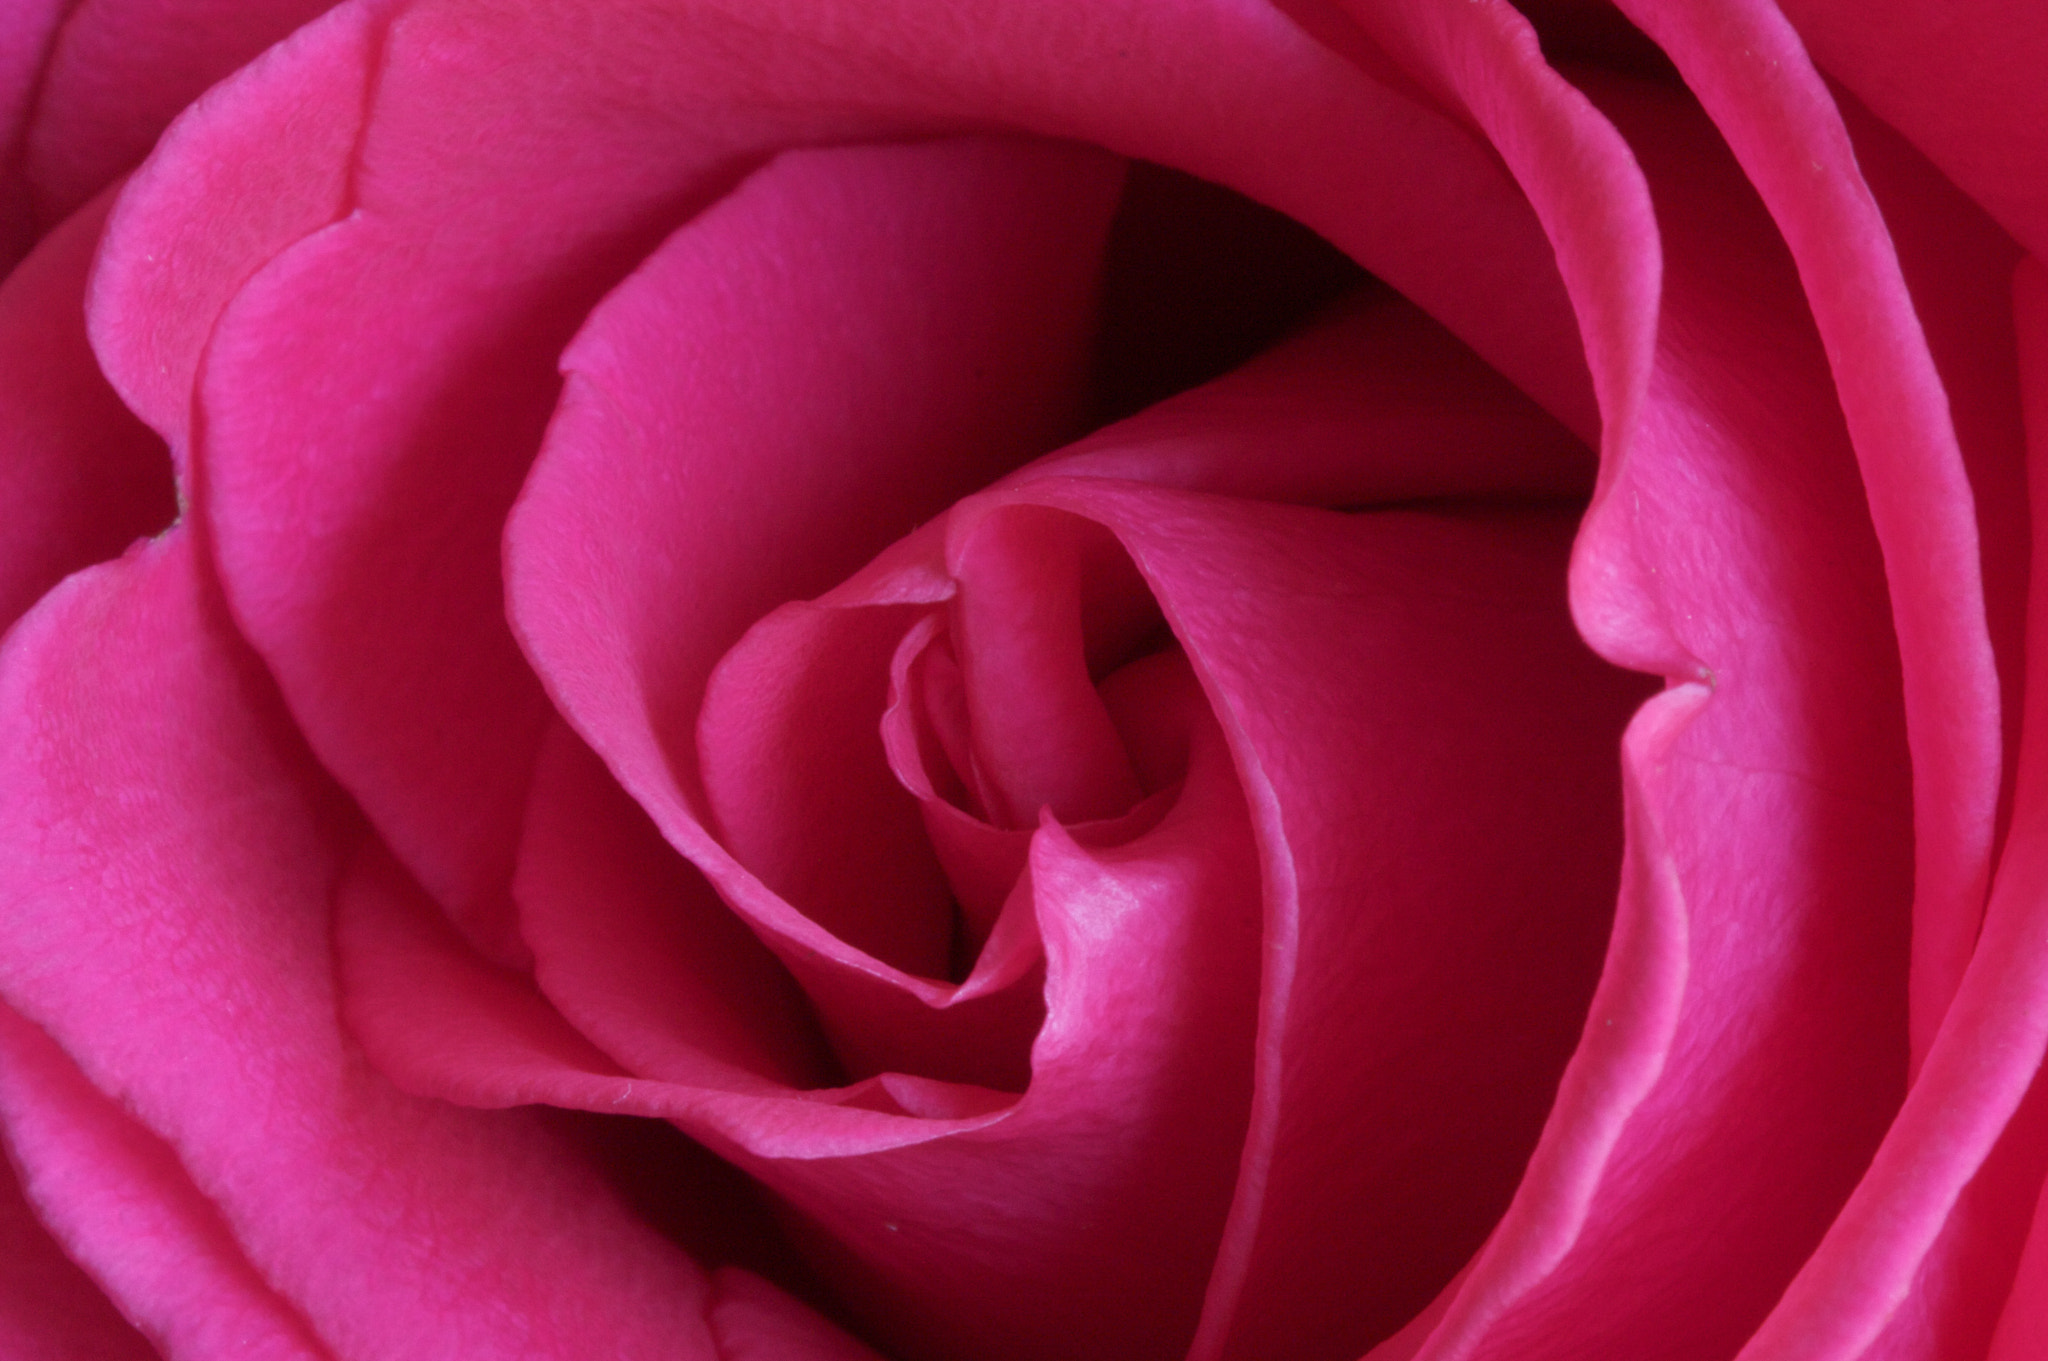 Photograph Red Rose by Rob Leavoy on 500px